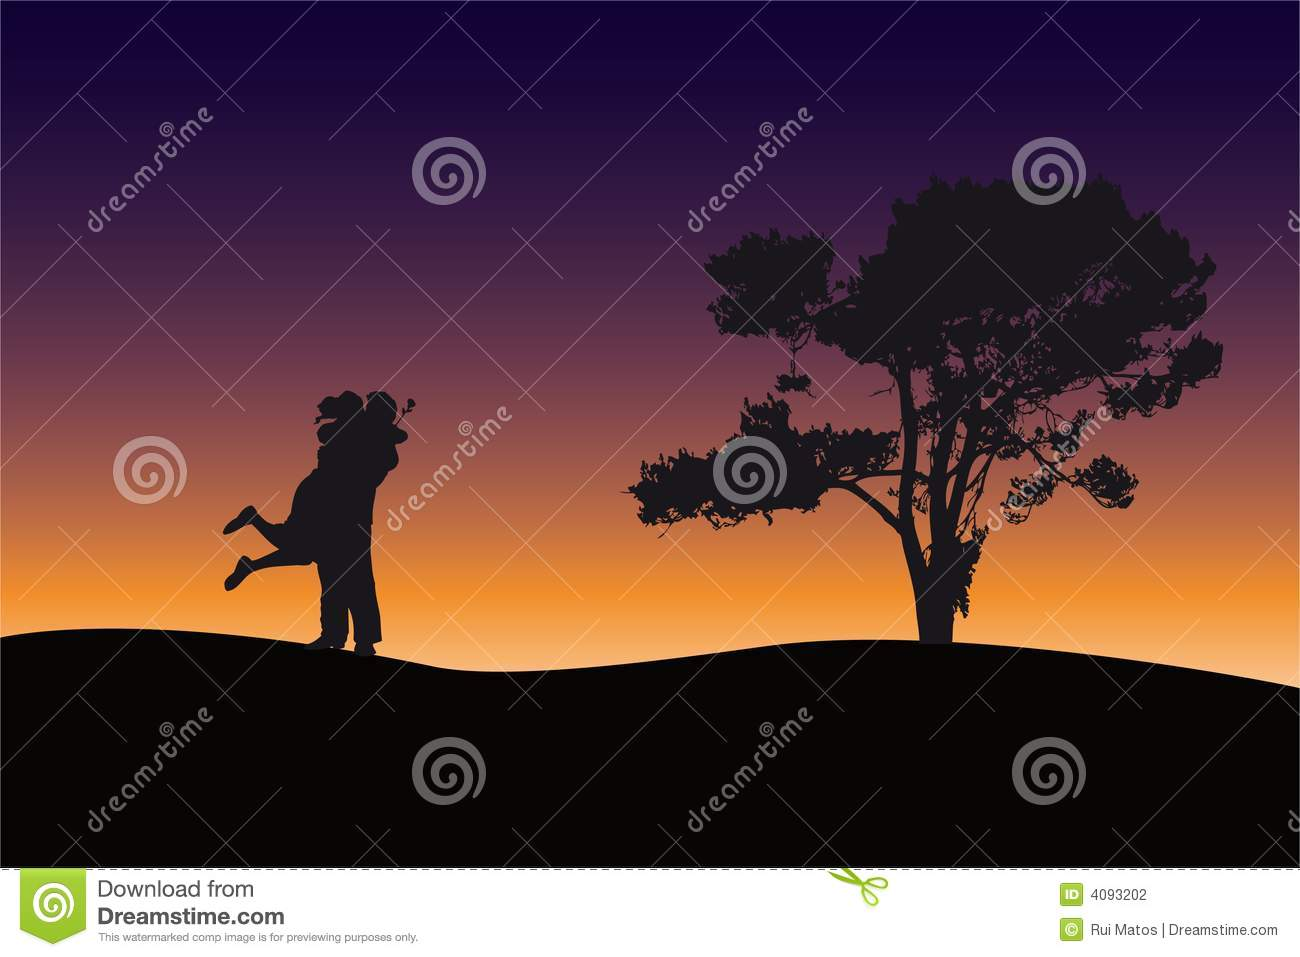 Couple silhouette at dawn